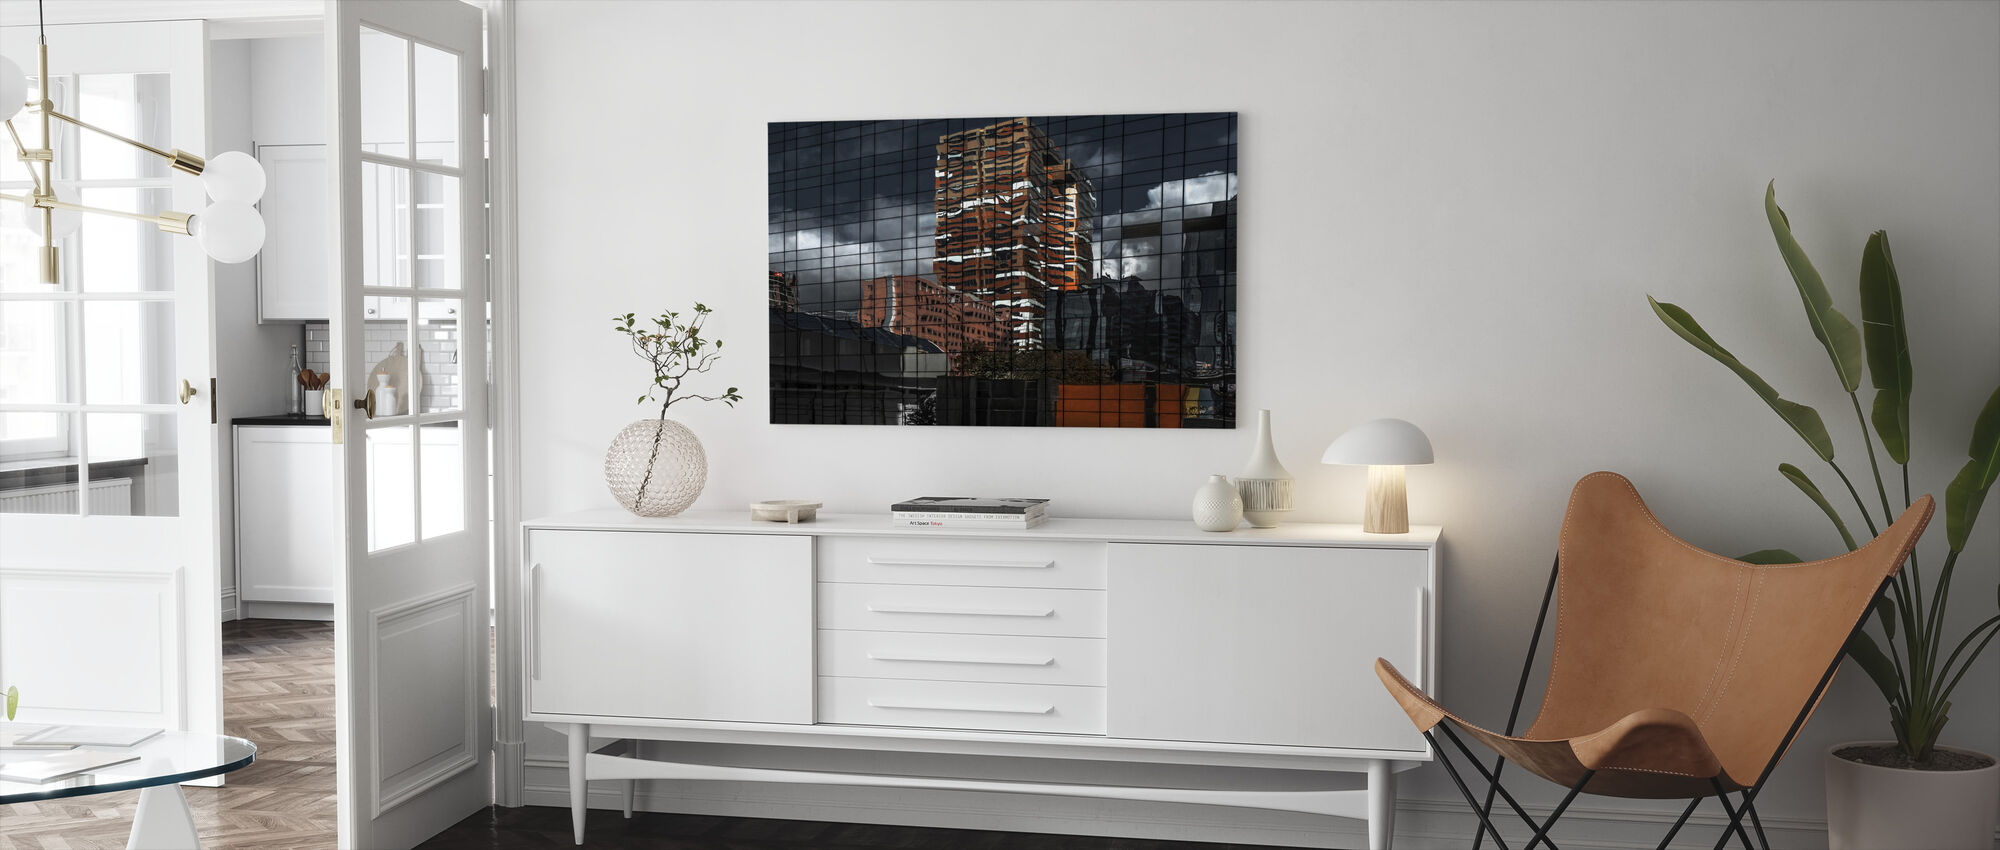 Puzzle Reflection - Canvas print - Living Room